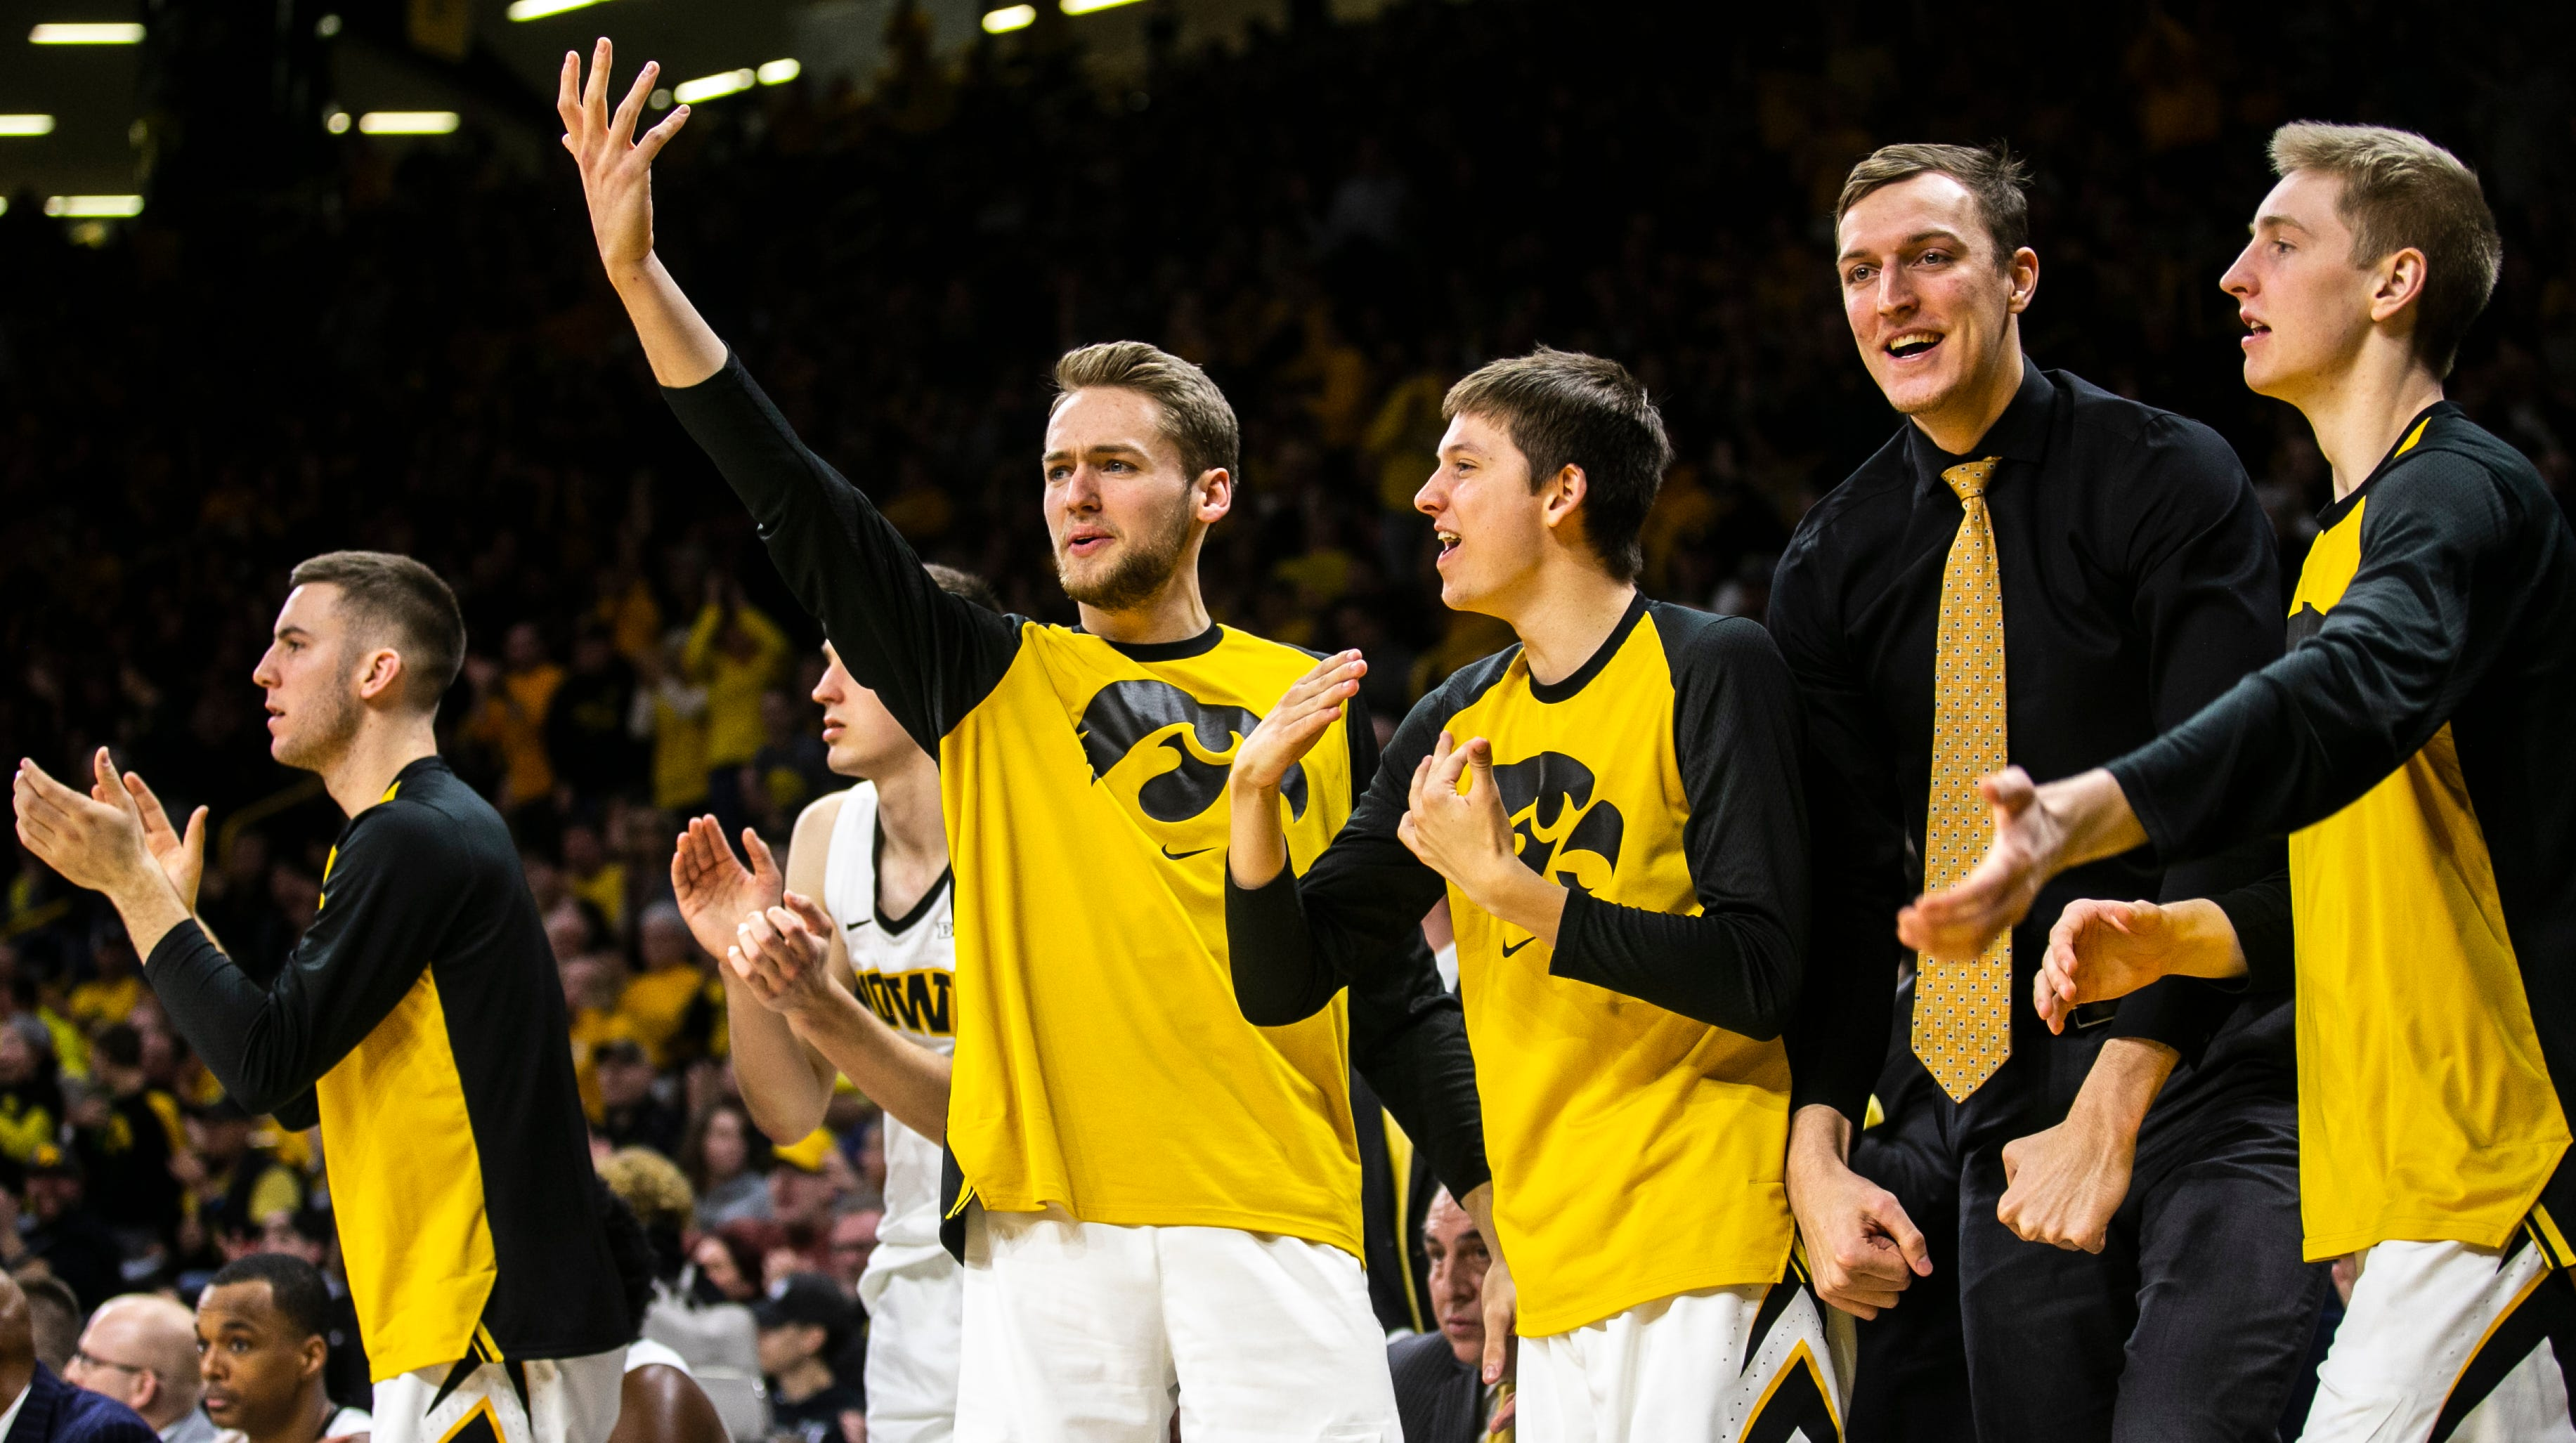 Iowa forward Riley Till (raising hand) celebrates with teammates (from left) Connor McCaffery, Austin Ash, Jack Nunge and Michael Baer during a NCAA Big Ten Conference men's basketball game on Friday, Feb. 1, 2019, at Carver-Hawkeye Arena in Iowa City, Iowa.